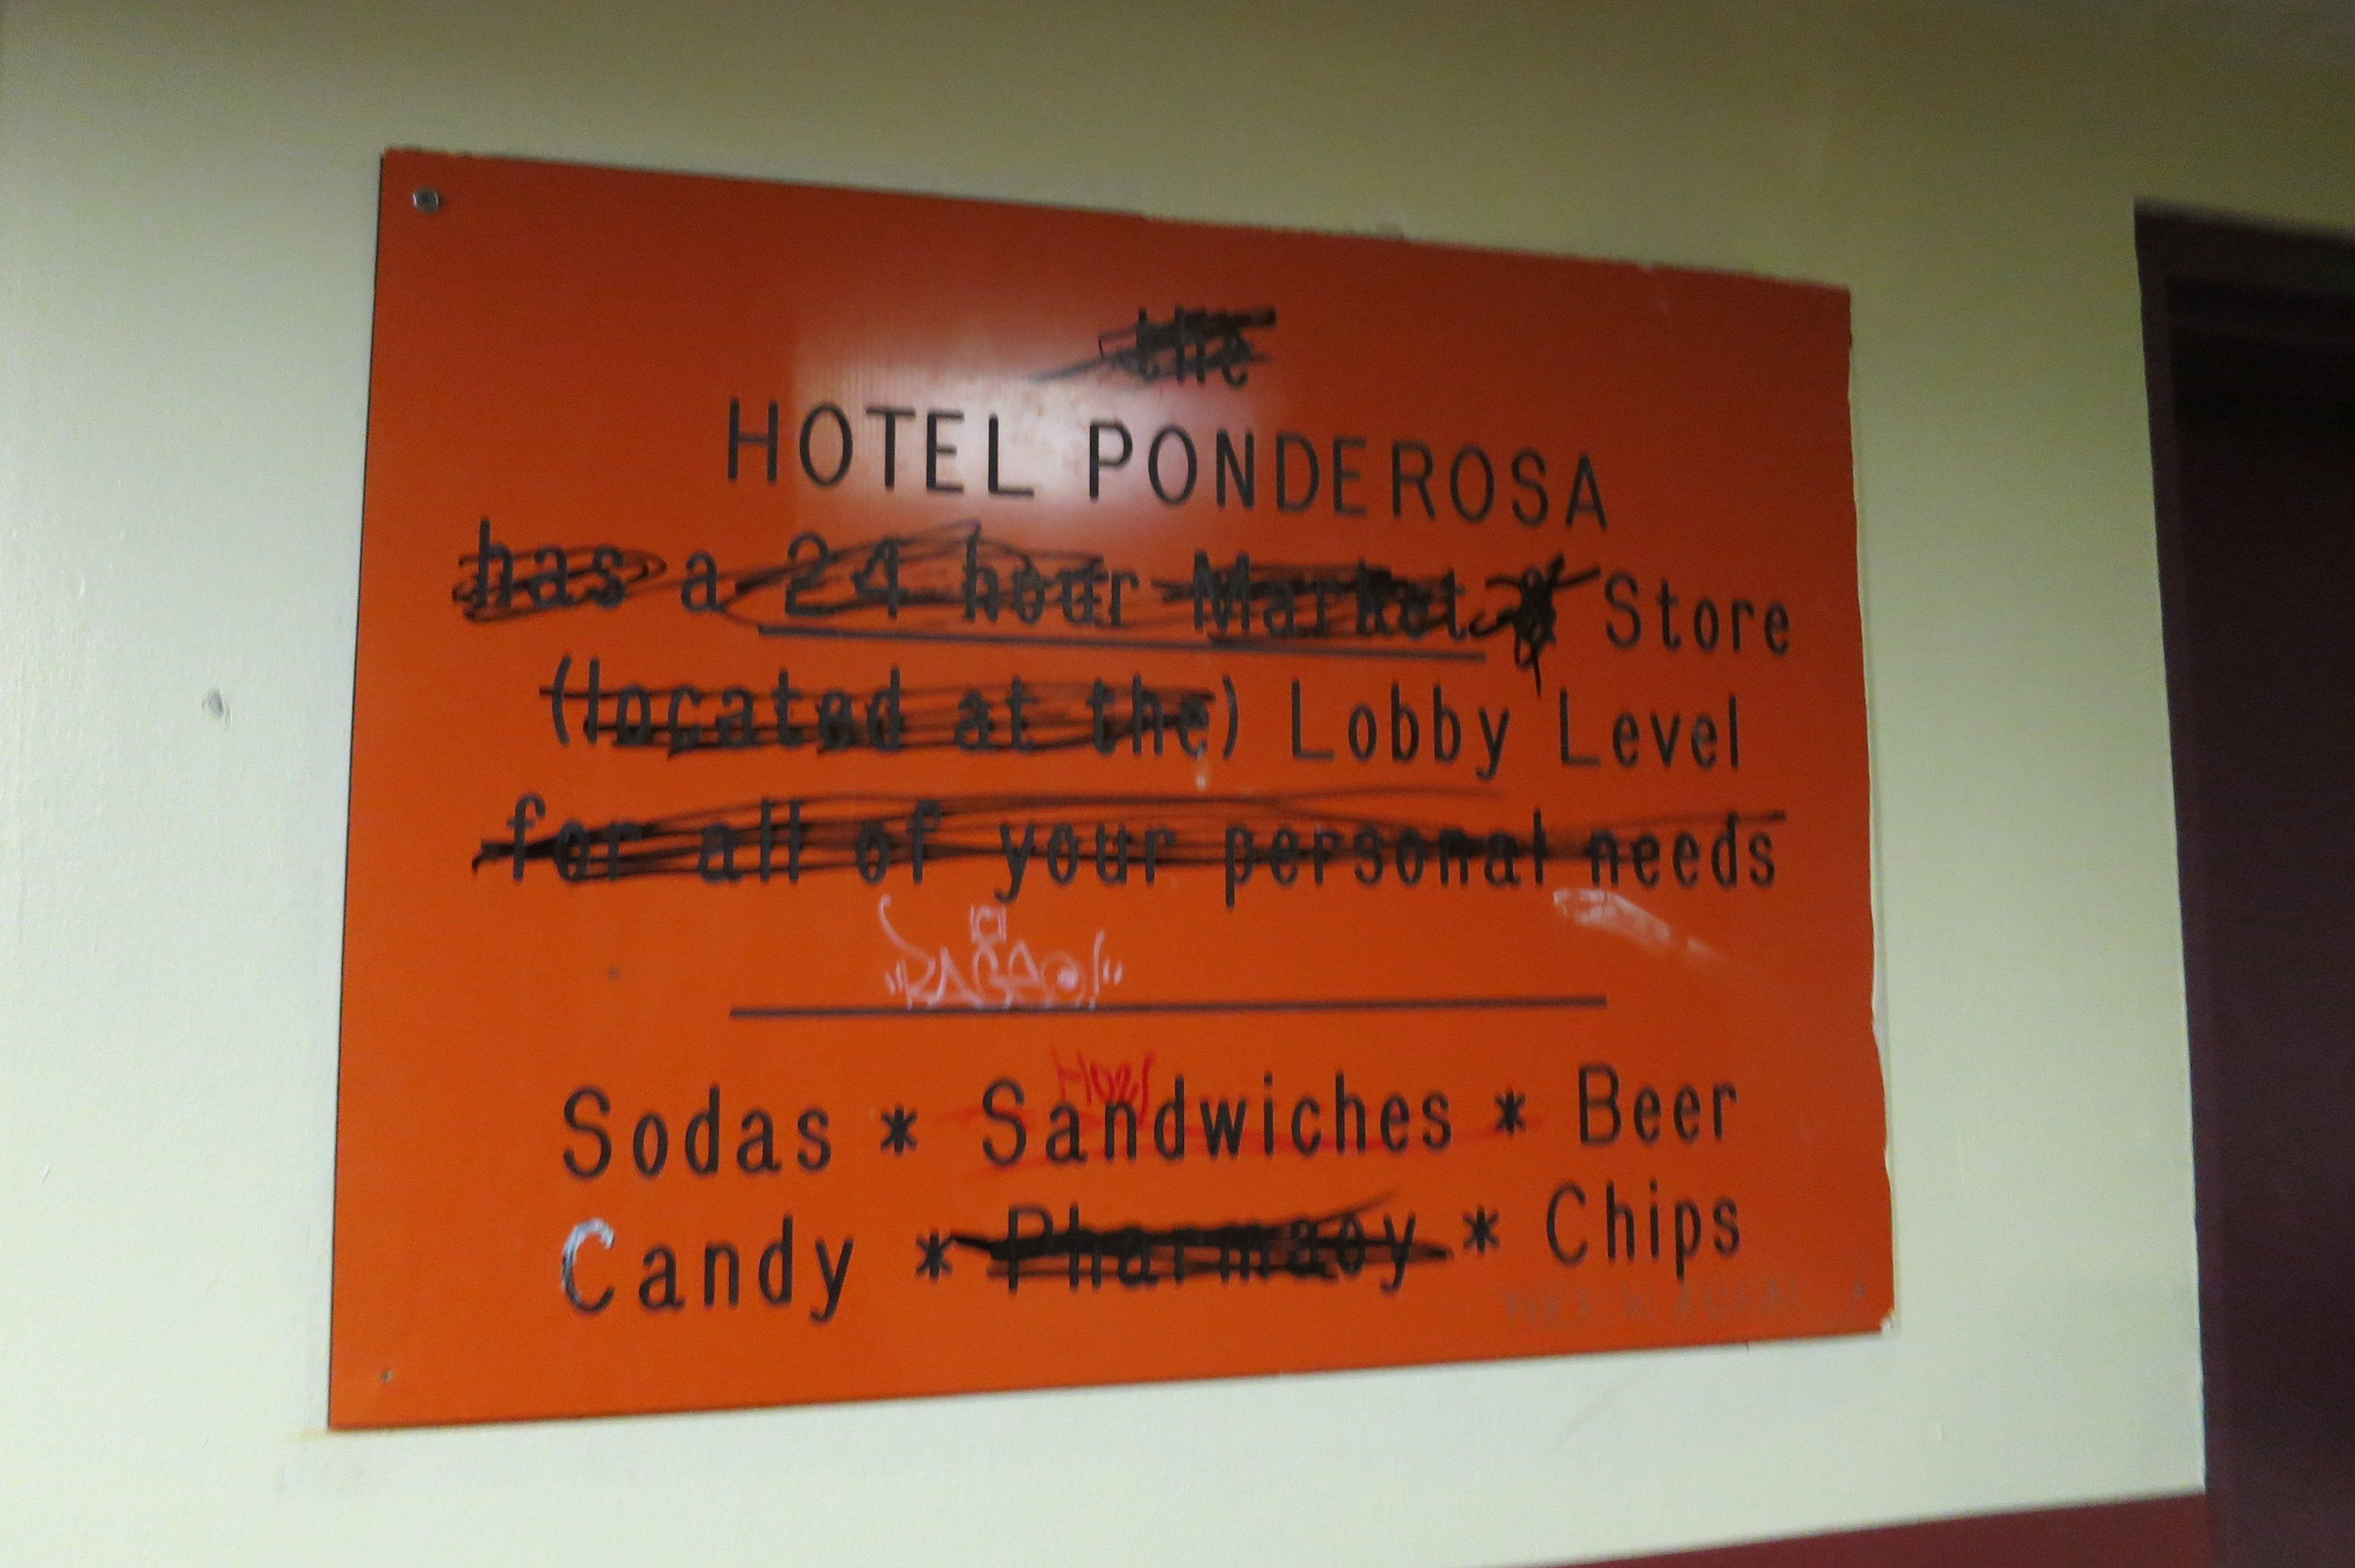 Some amenities have been cut down at the Ponderosa, as indicated by the above sign.